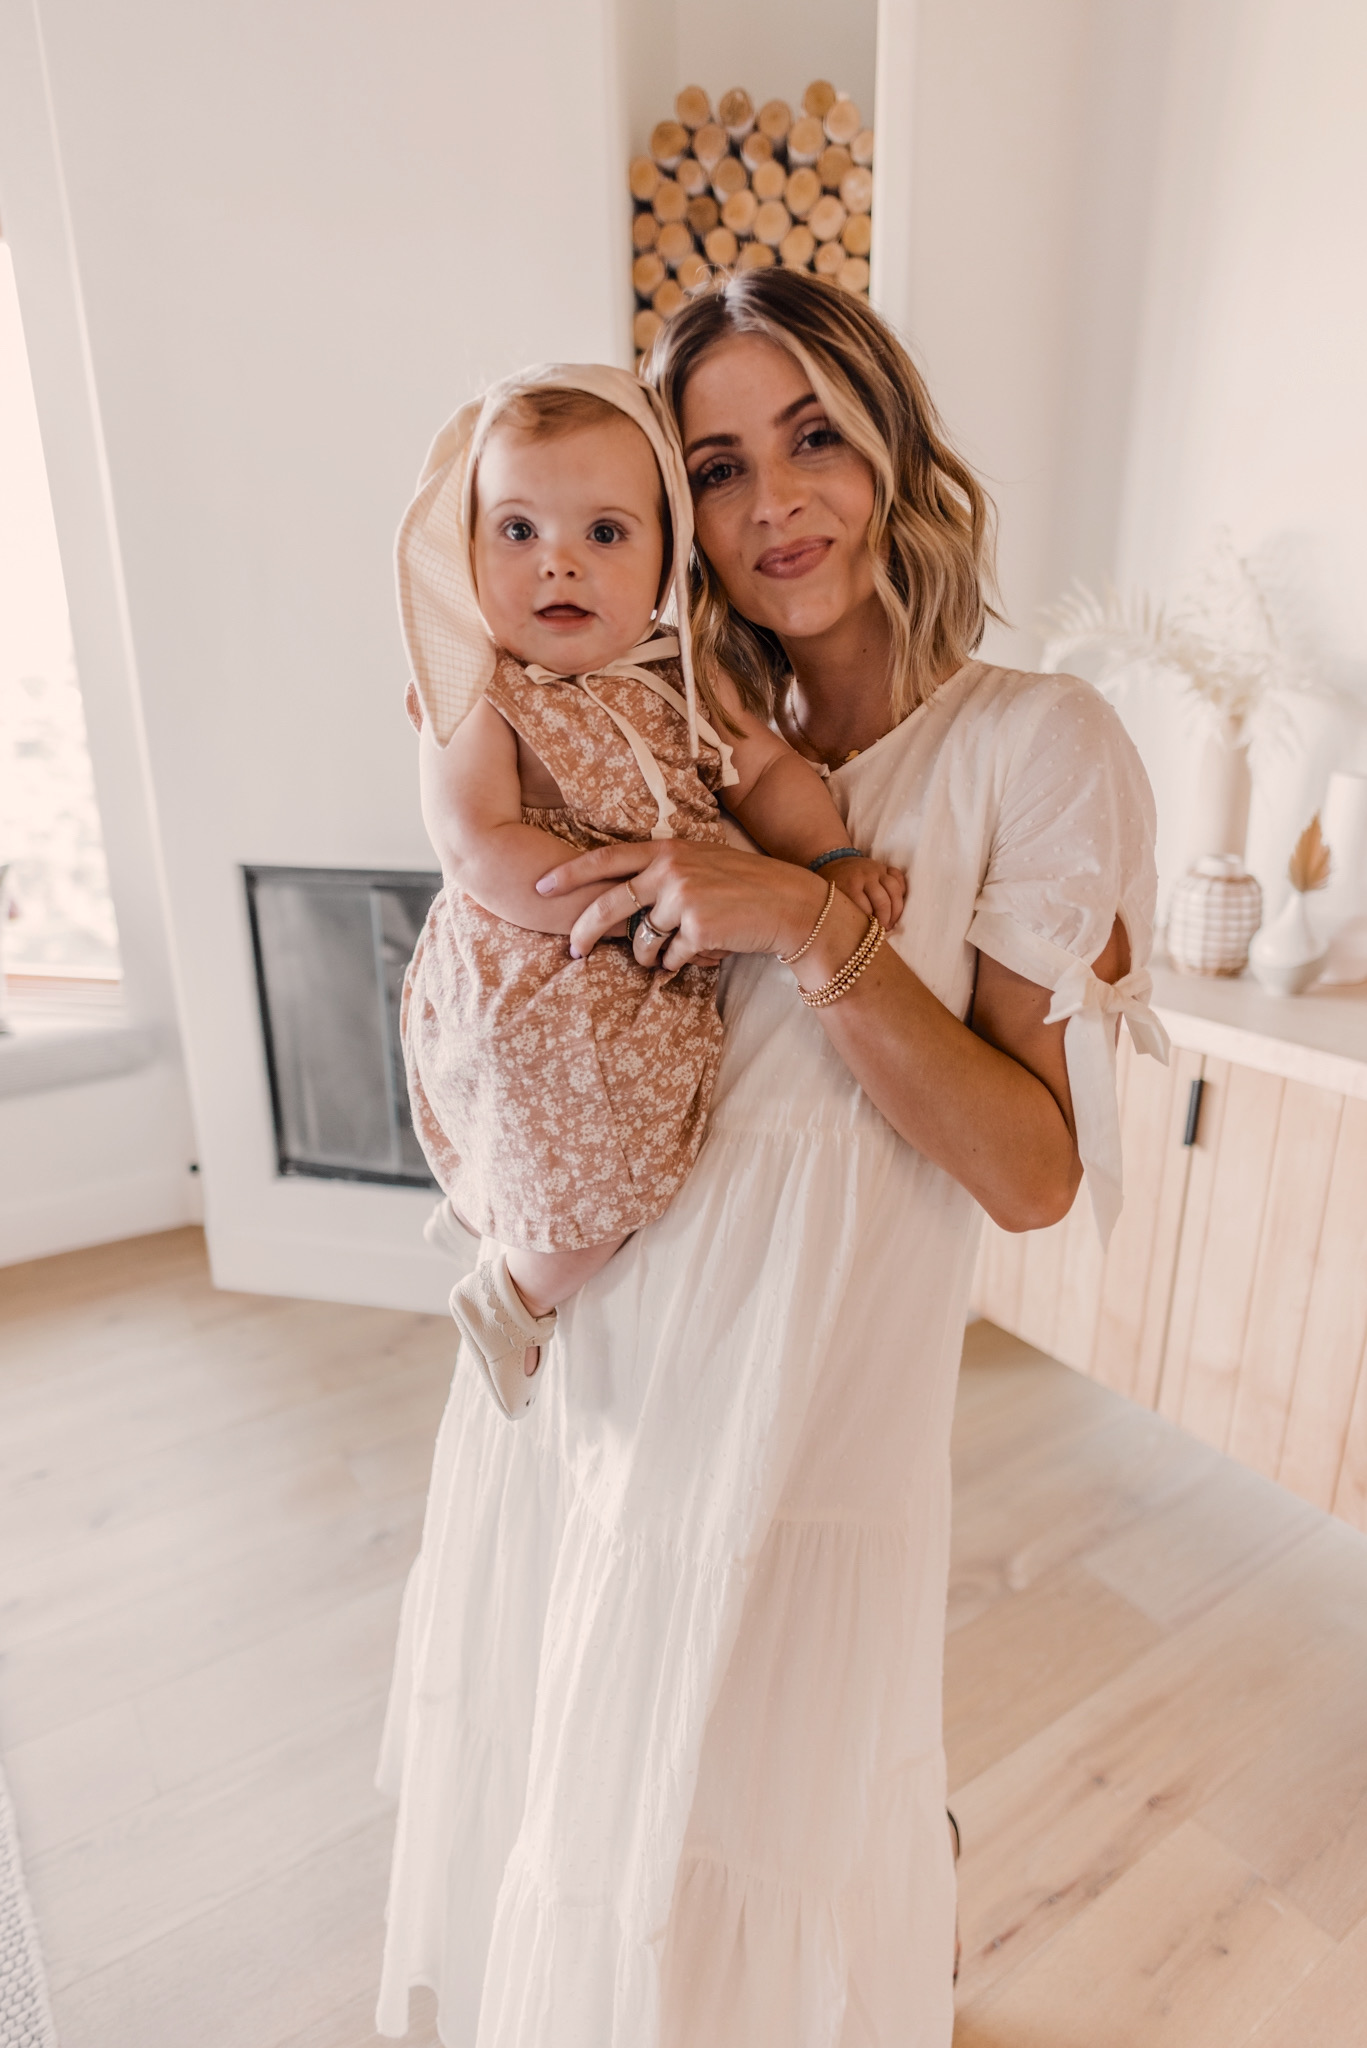 TOP 10 CUTE SPRING WHITE DRESSES featured by top San Francisco fashion blog, Navy Grace: image of a blonde woman wearing a Madewell maxi dress. | White Spring Dresses by popular San Diego fashion blog, Navy Grace: image of a woman holding her baby girl and wearing a Madewell Tie-Sleeve Tiered Midi Dress in Swiss Dot, Shashi Tilu Set of 2 Bracelets, Loeffler Randall Daphne Knot Flat Sandals, and holding a Gigi New York TORI TOTE White Pebble Grain.